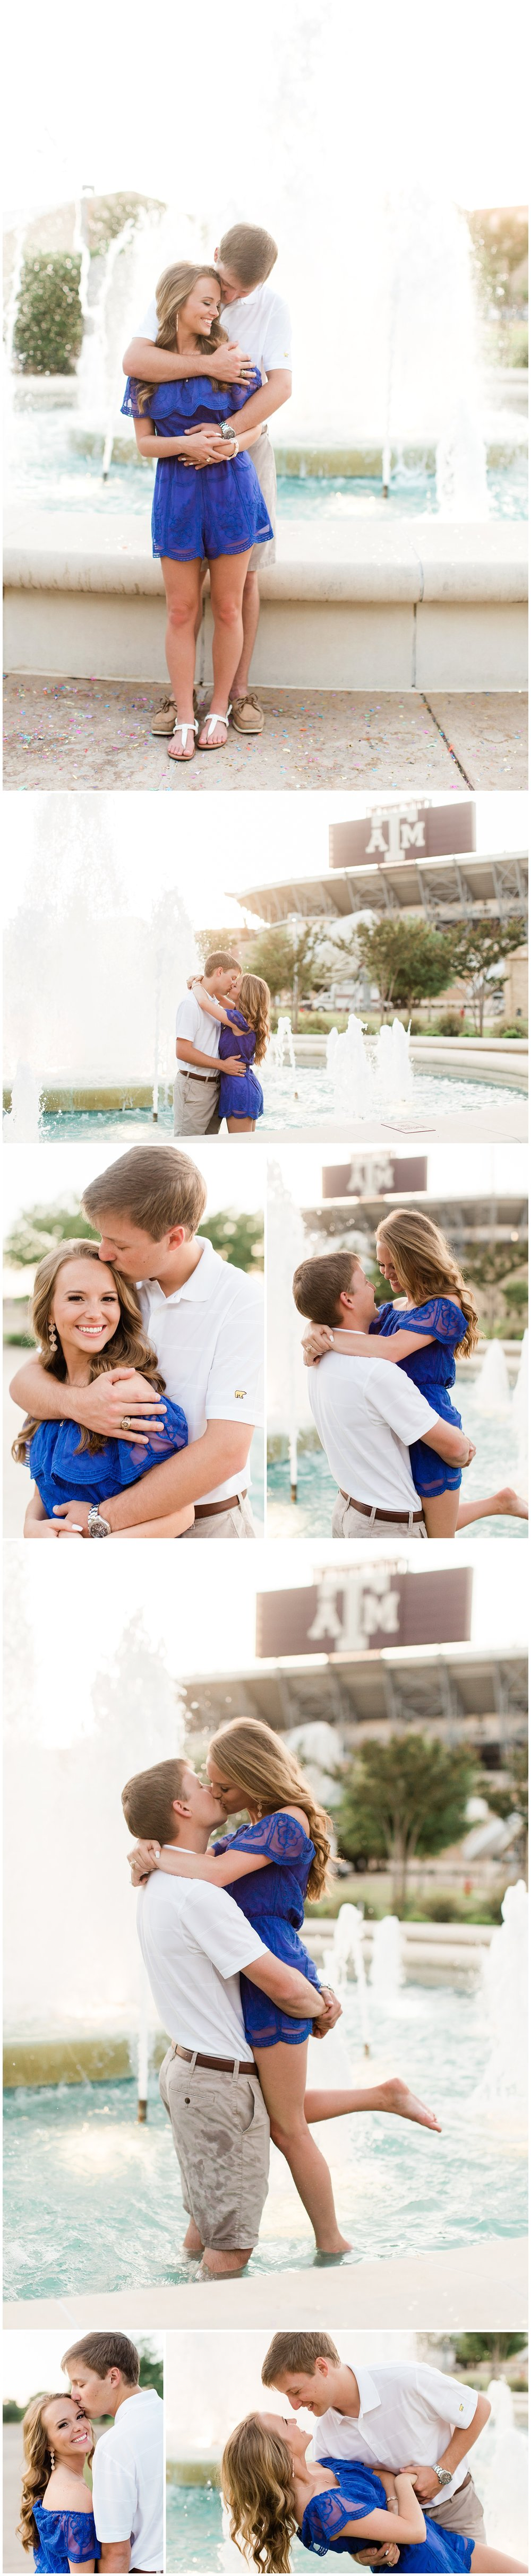 Texas_A&M_Engagement_Session_Kristina_Ross_Photography_0011.jpg